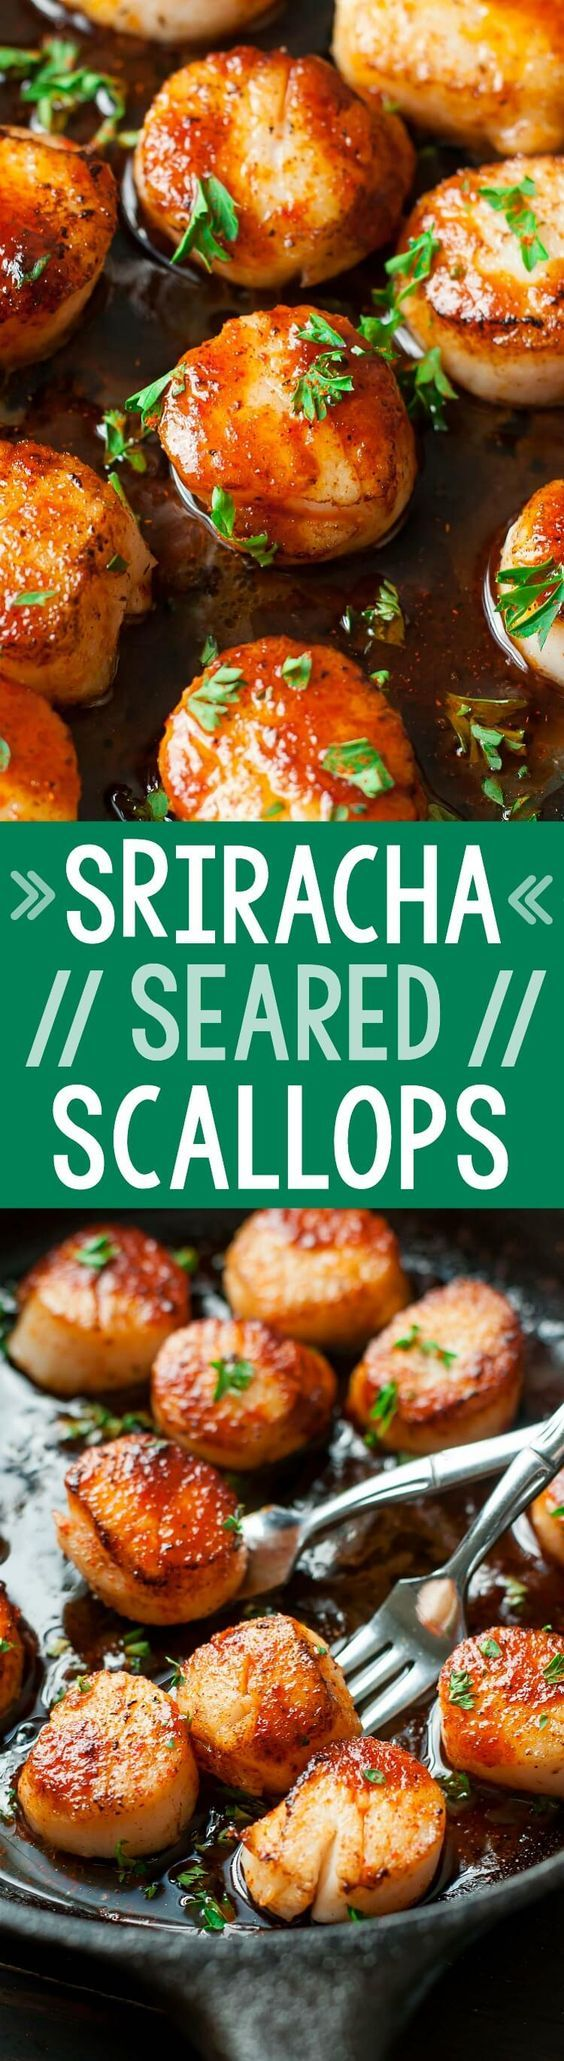 These quick and easy Sriracha Glazed Seared Scallops are finished off with a spicy + super flavorful homemade Sriracha pan sauce! Delicious!